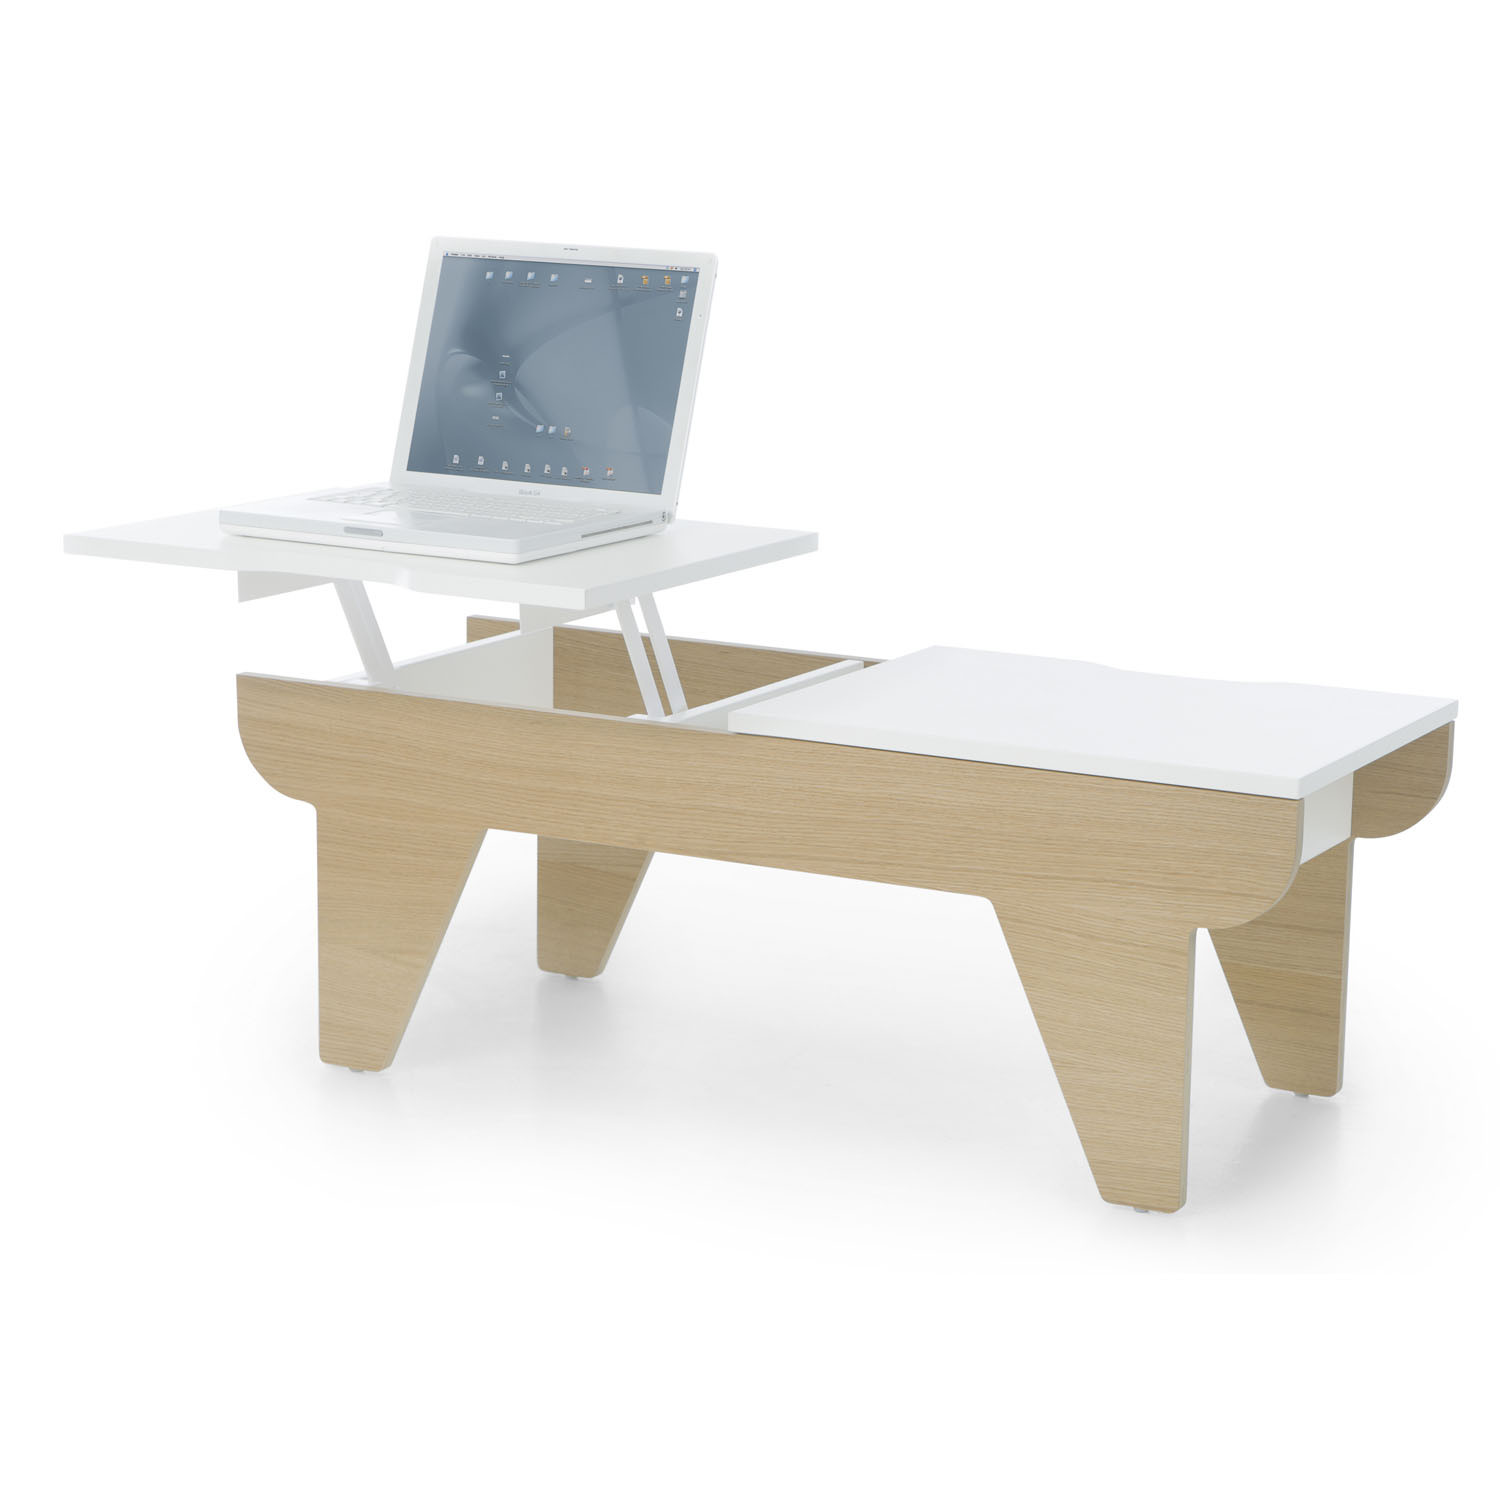 Chillout Desk with Integrated Laptop Holder